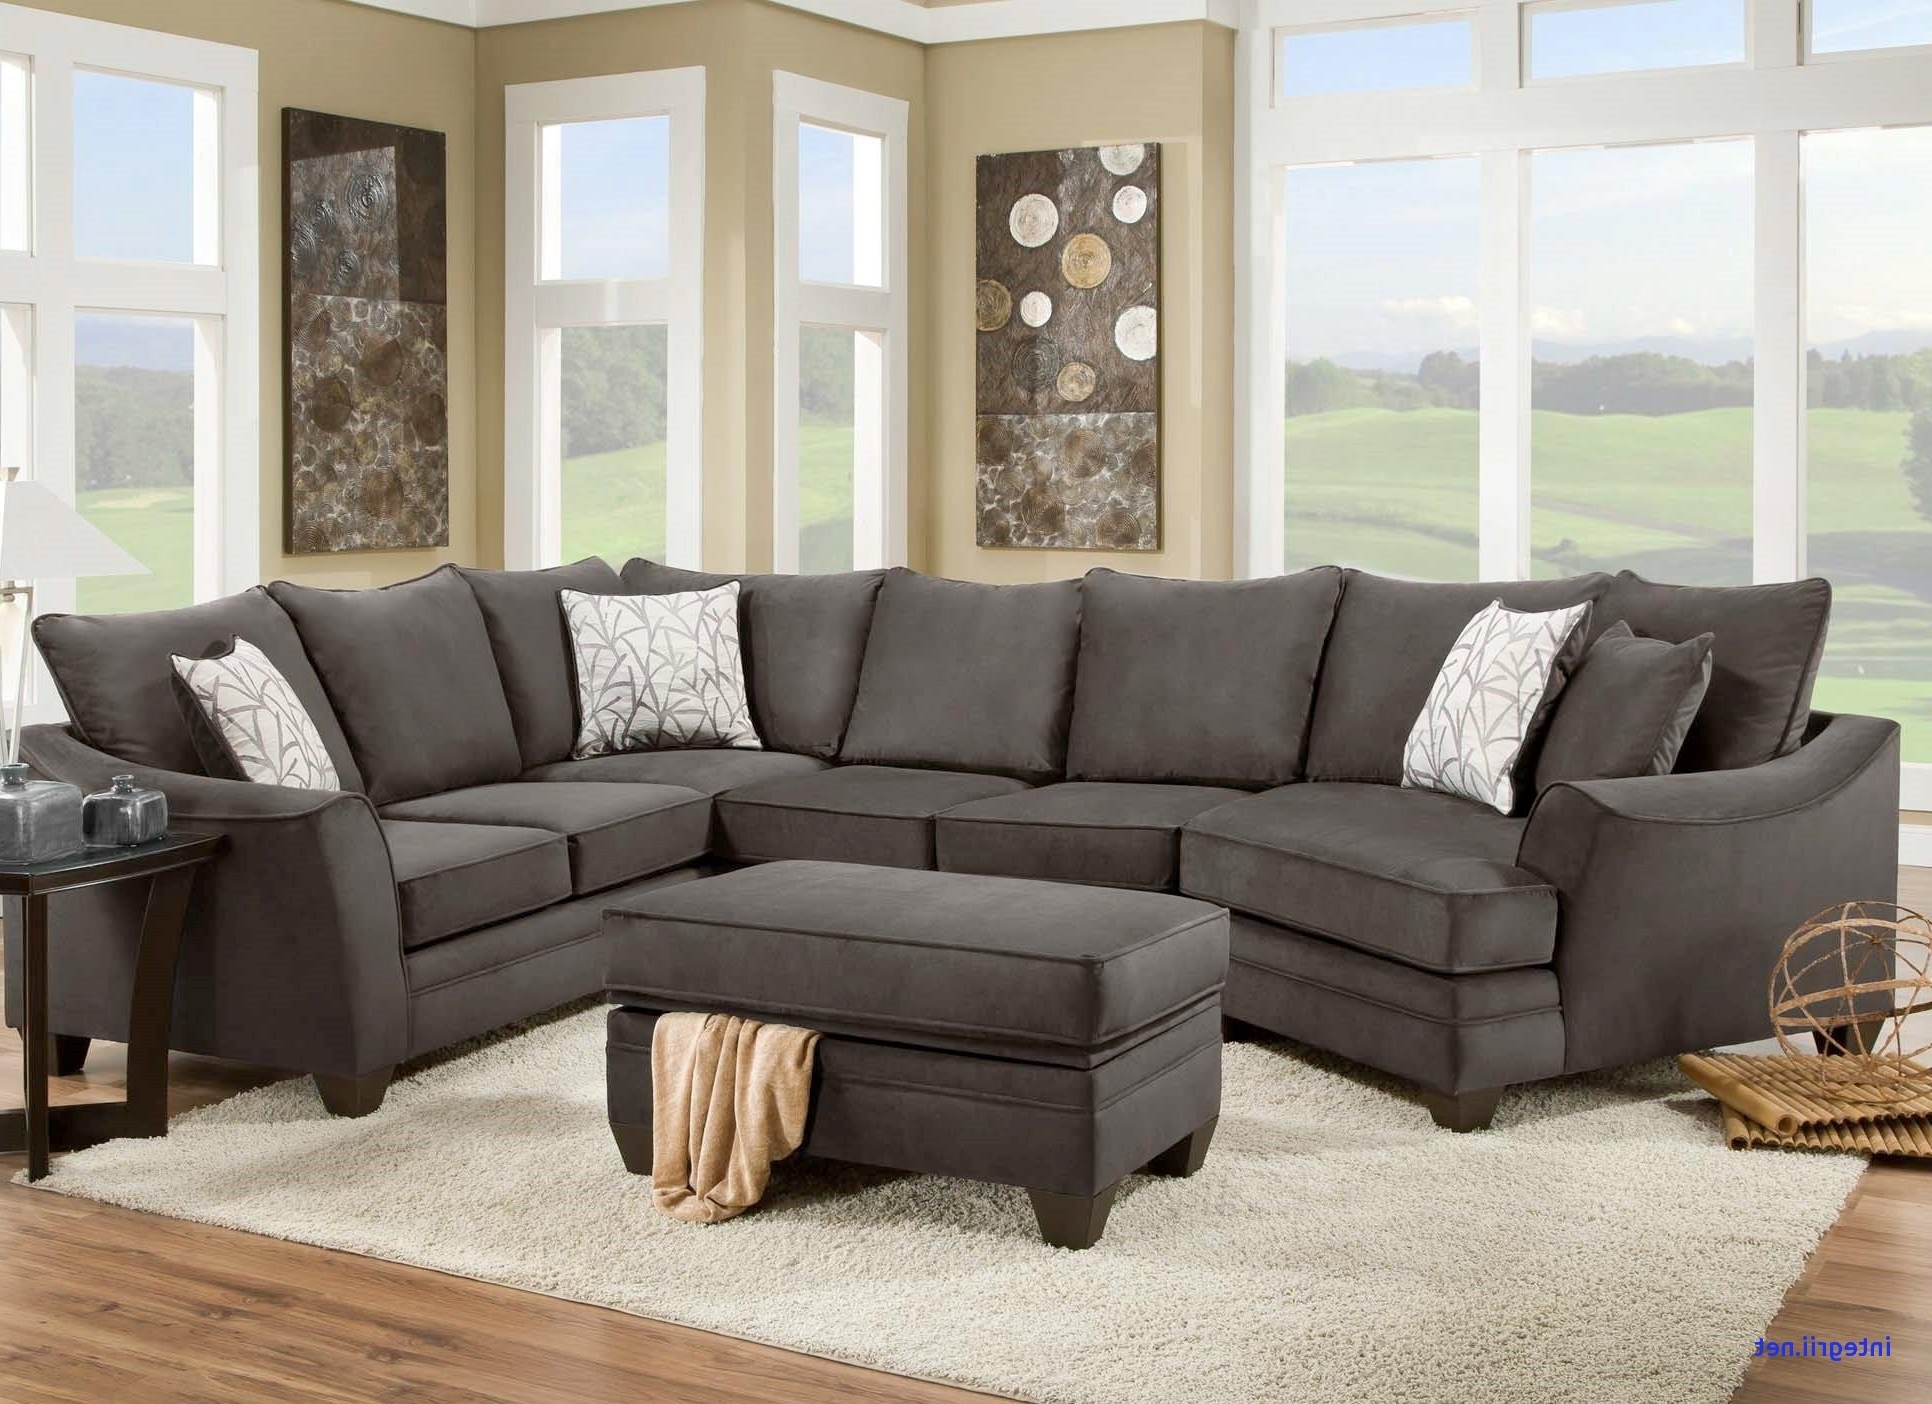 Most Current Royal Furniture Sectional Sofas In Sectional Furniture Beautiful Affordable Furniture 3650 Sofa (View 6 of 20)